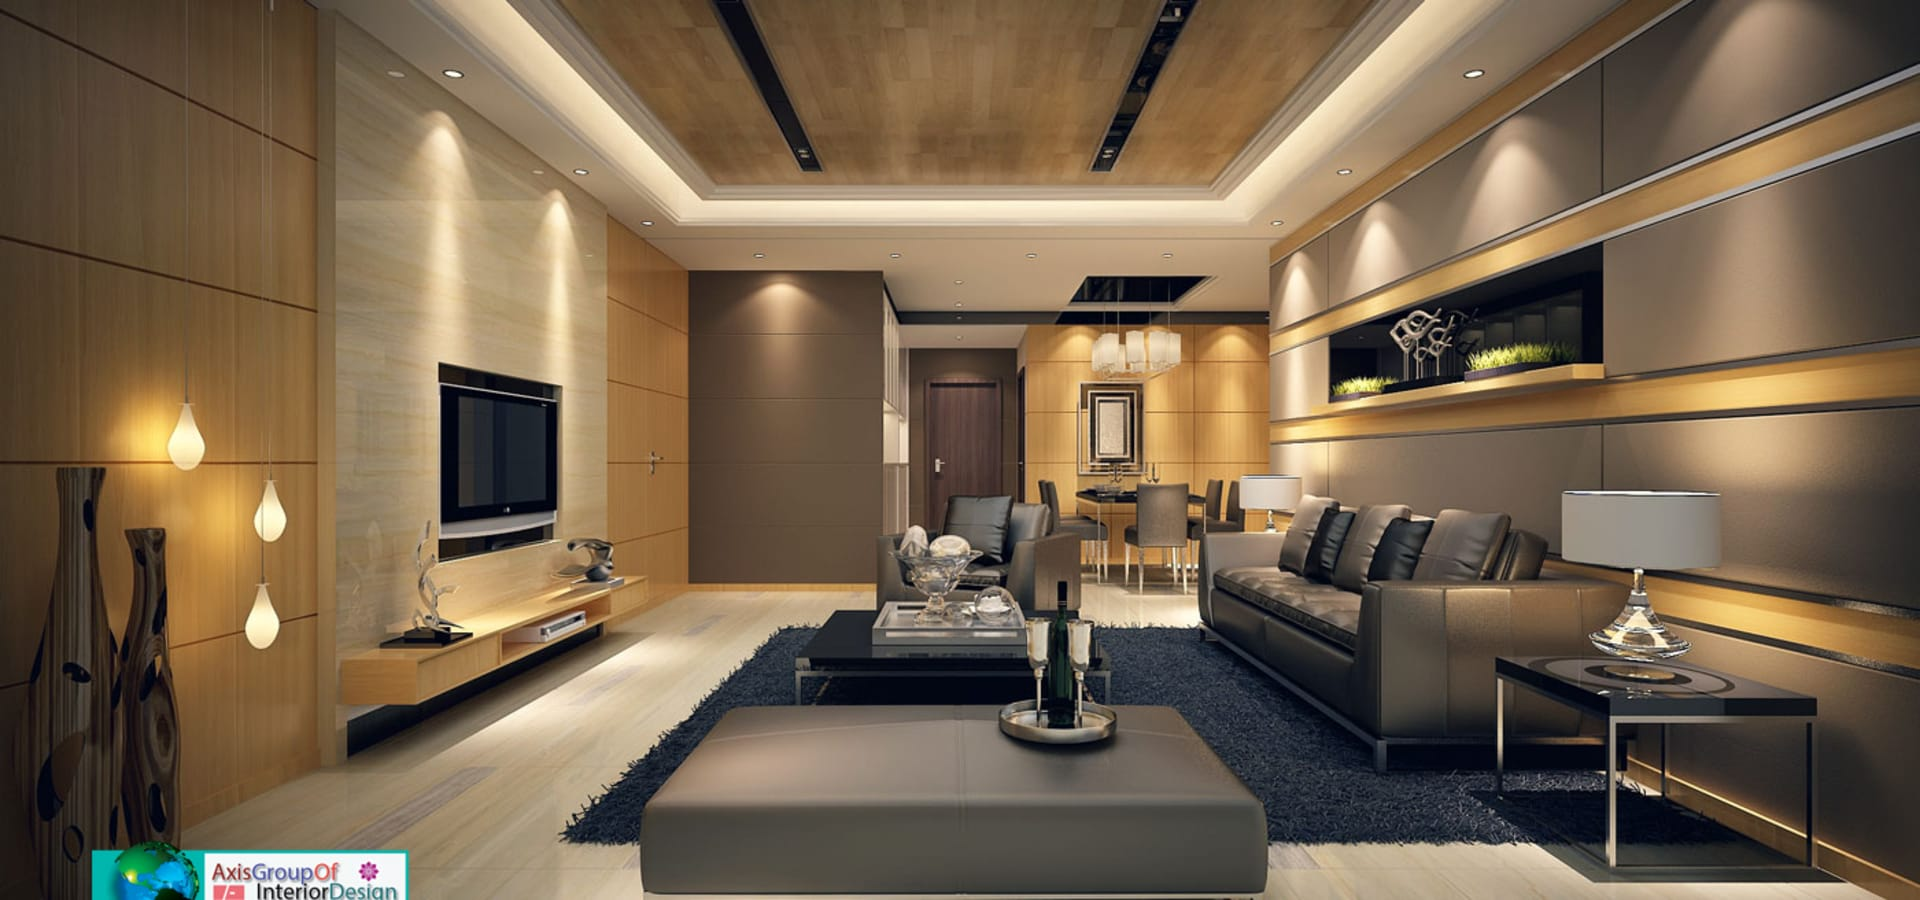 Axis Group Of Interior Design